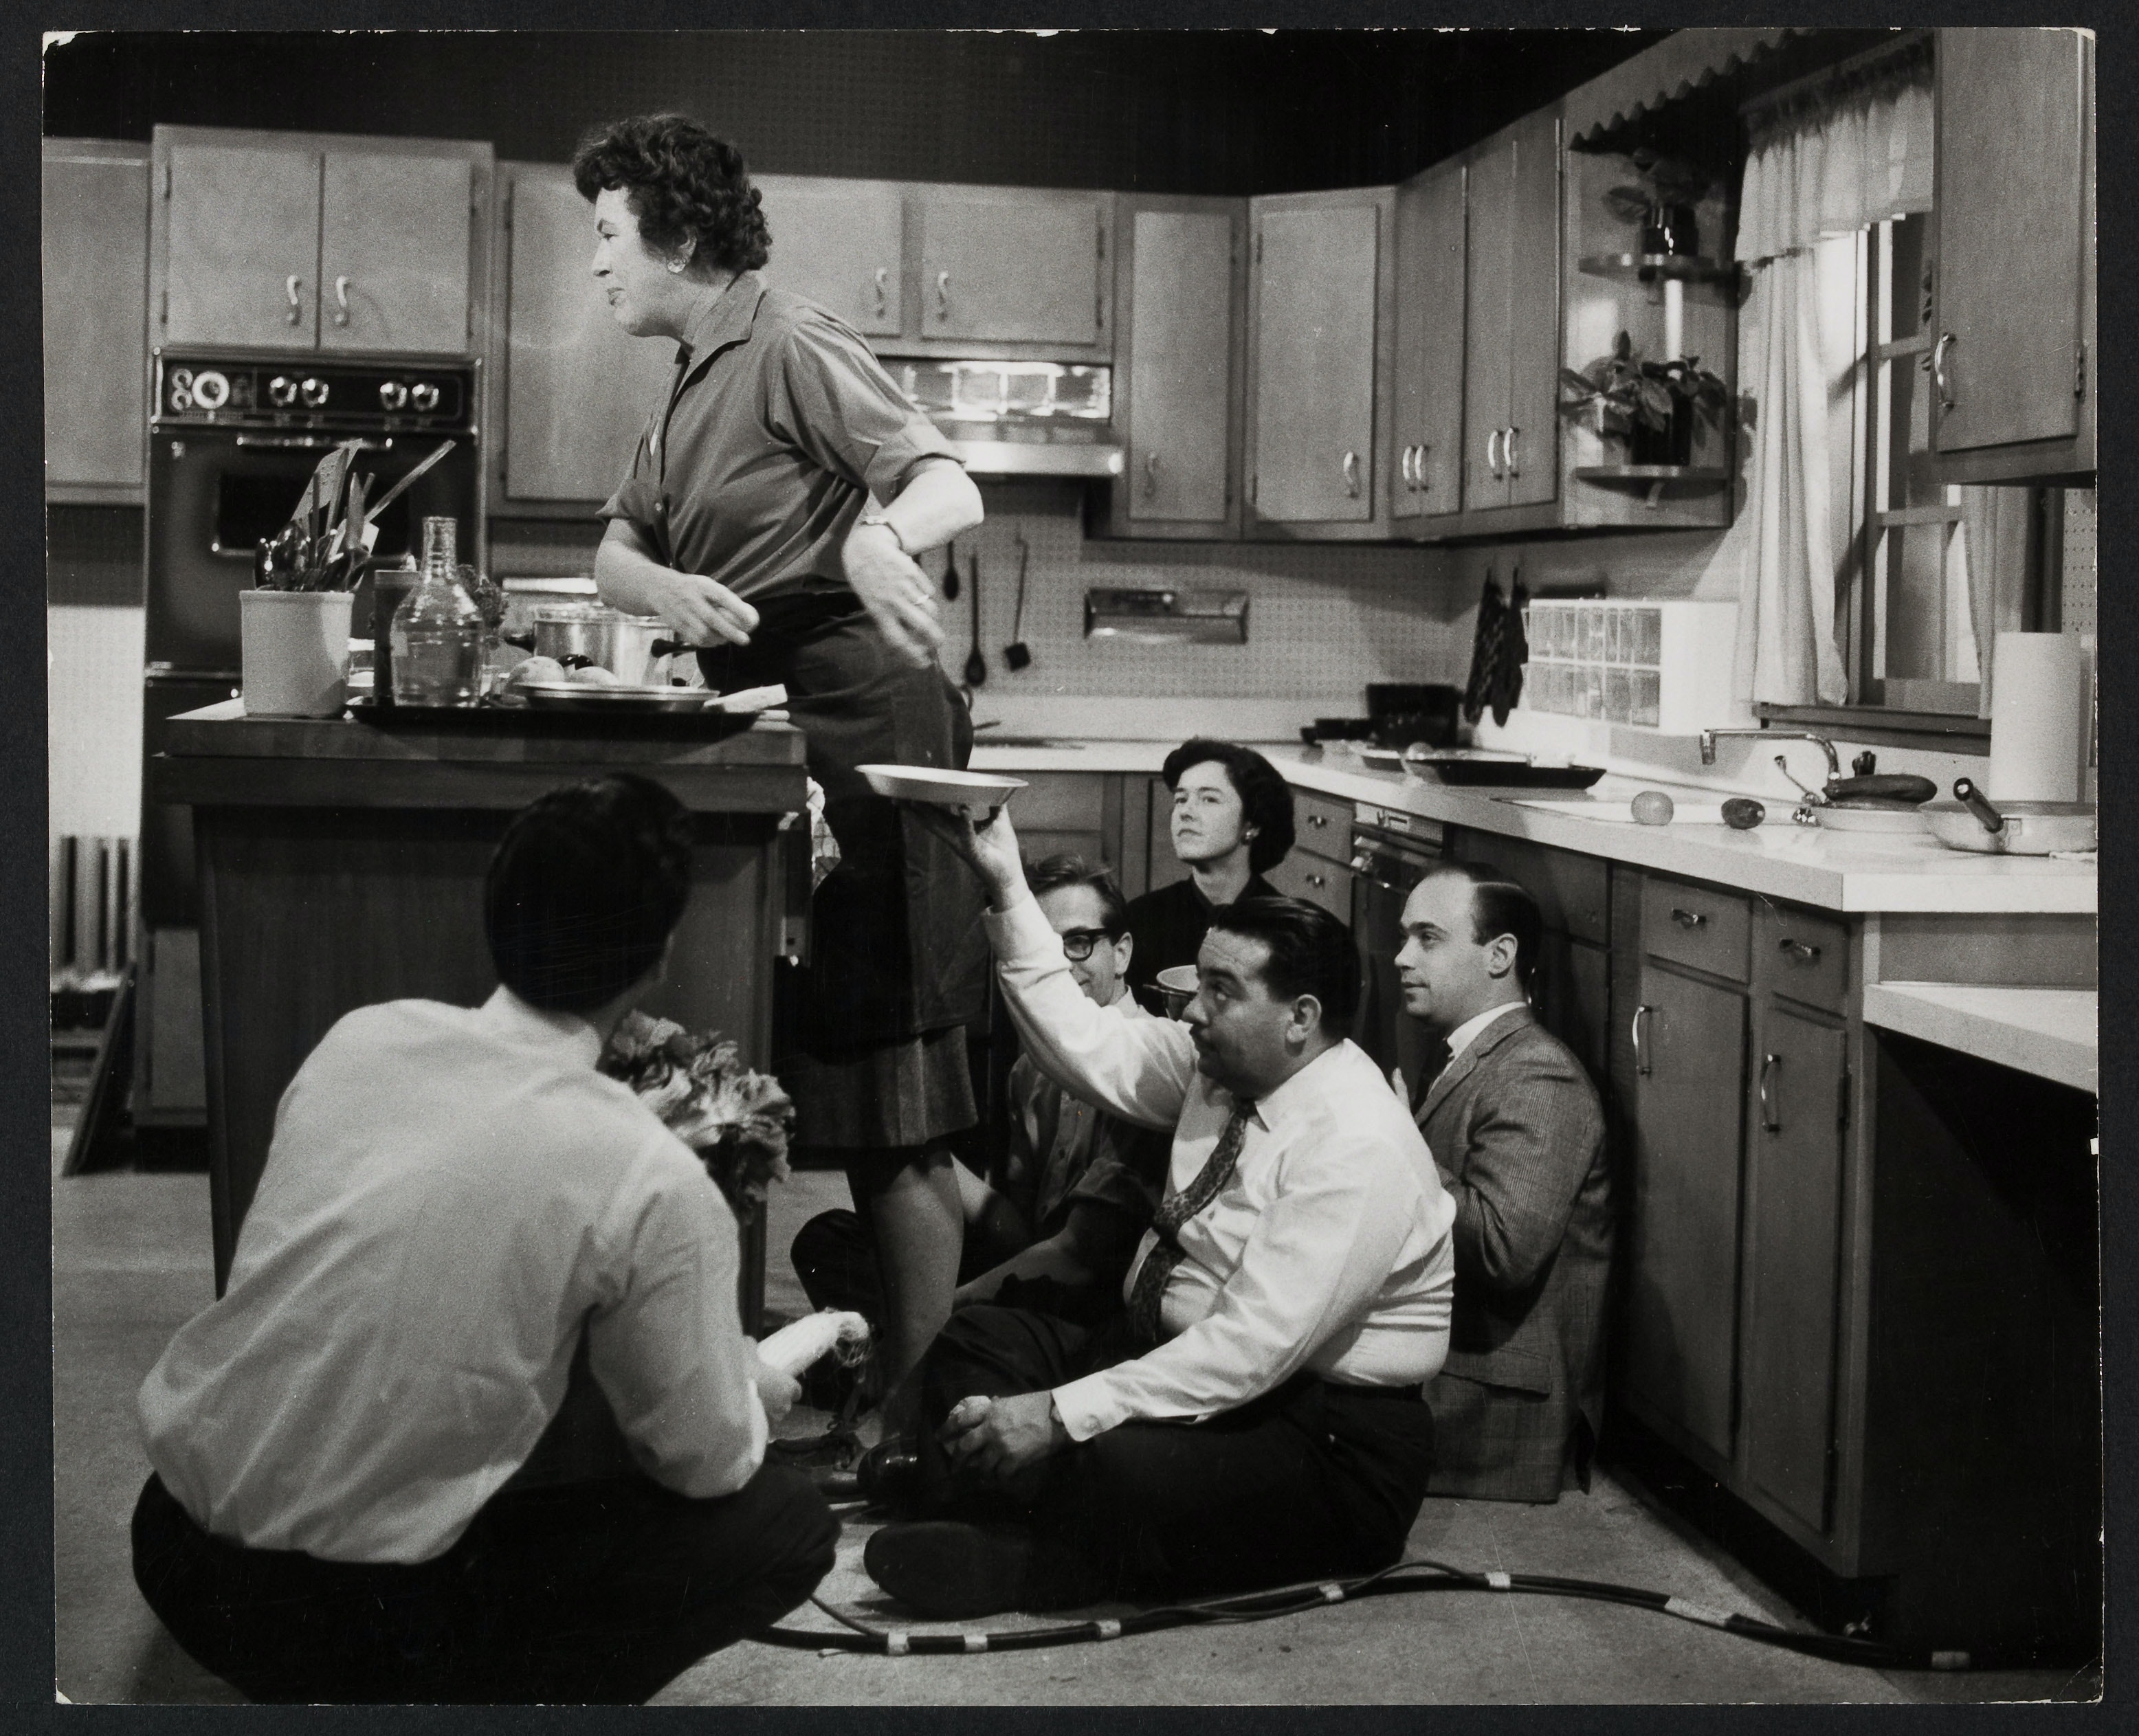 Julia Child filming a 1964 promo with four others at the Cambridge Gas and Electric Kitchen